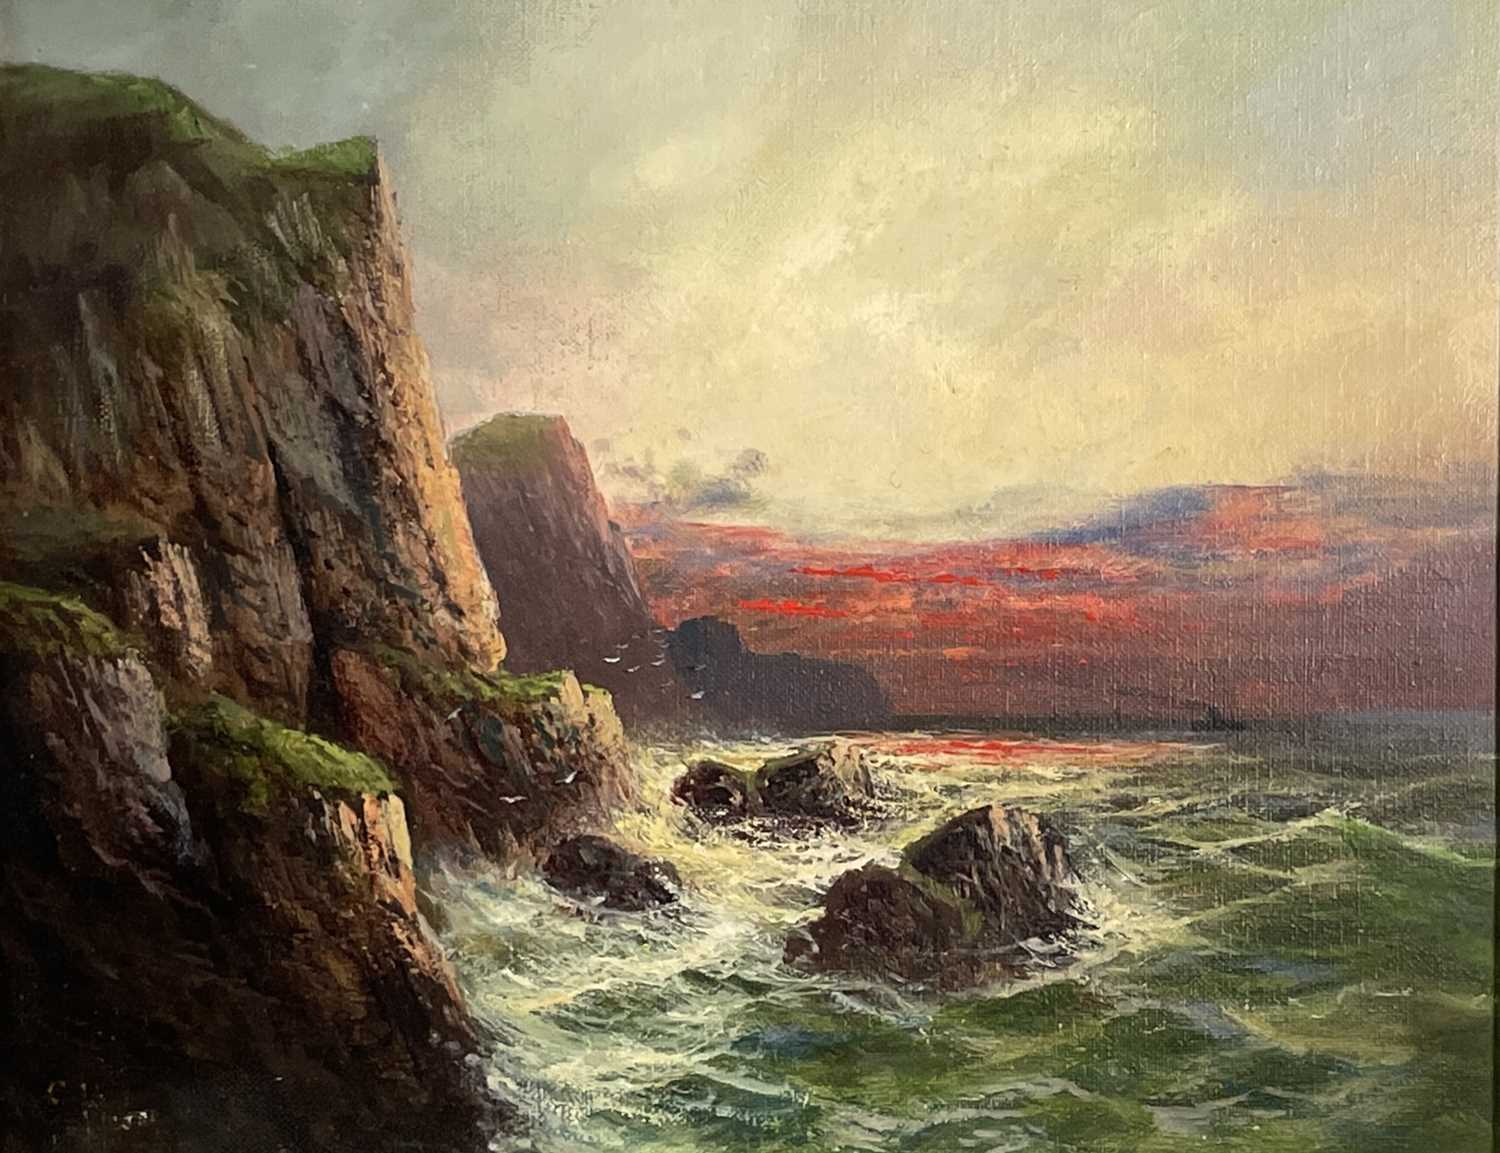 """Frank HIDER (1861-1933)Two oils on canvas """"Near Lands End"""", 30 x 50cm'The Evening Glory of the - Image 7 of 7"""